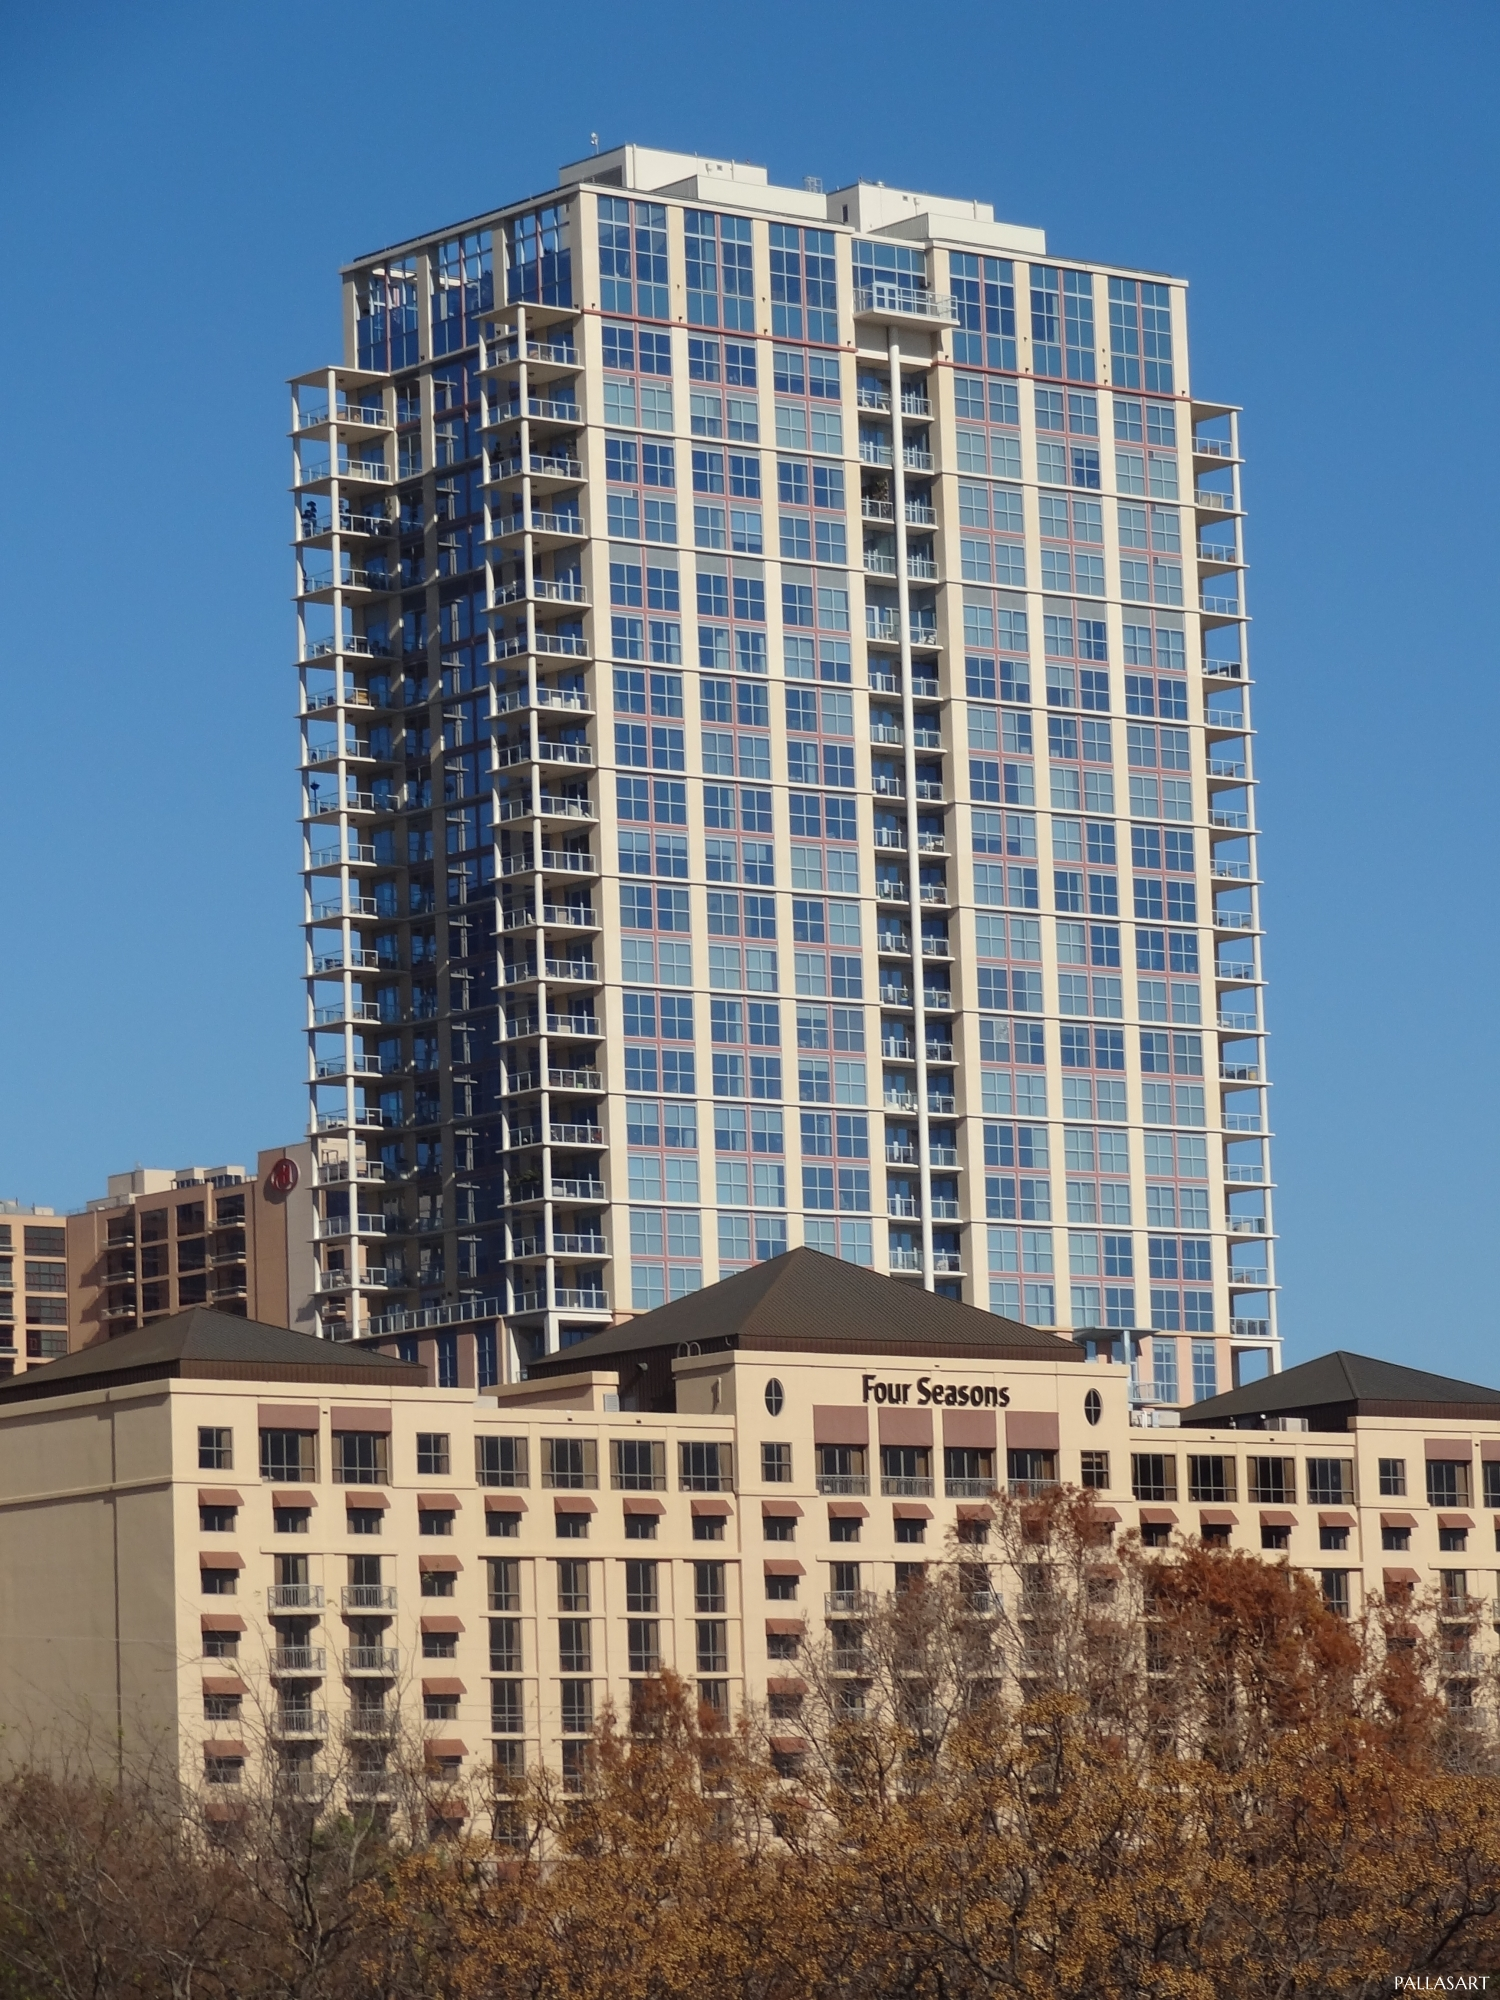 The Four Seasons Residences, 98 San Jacinto, Austin, TX